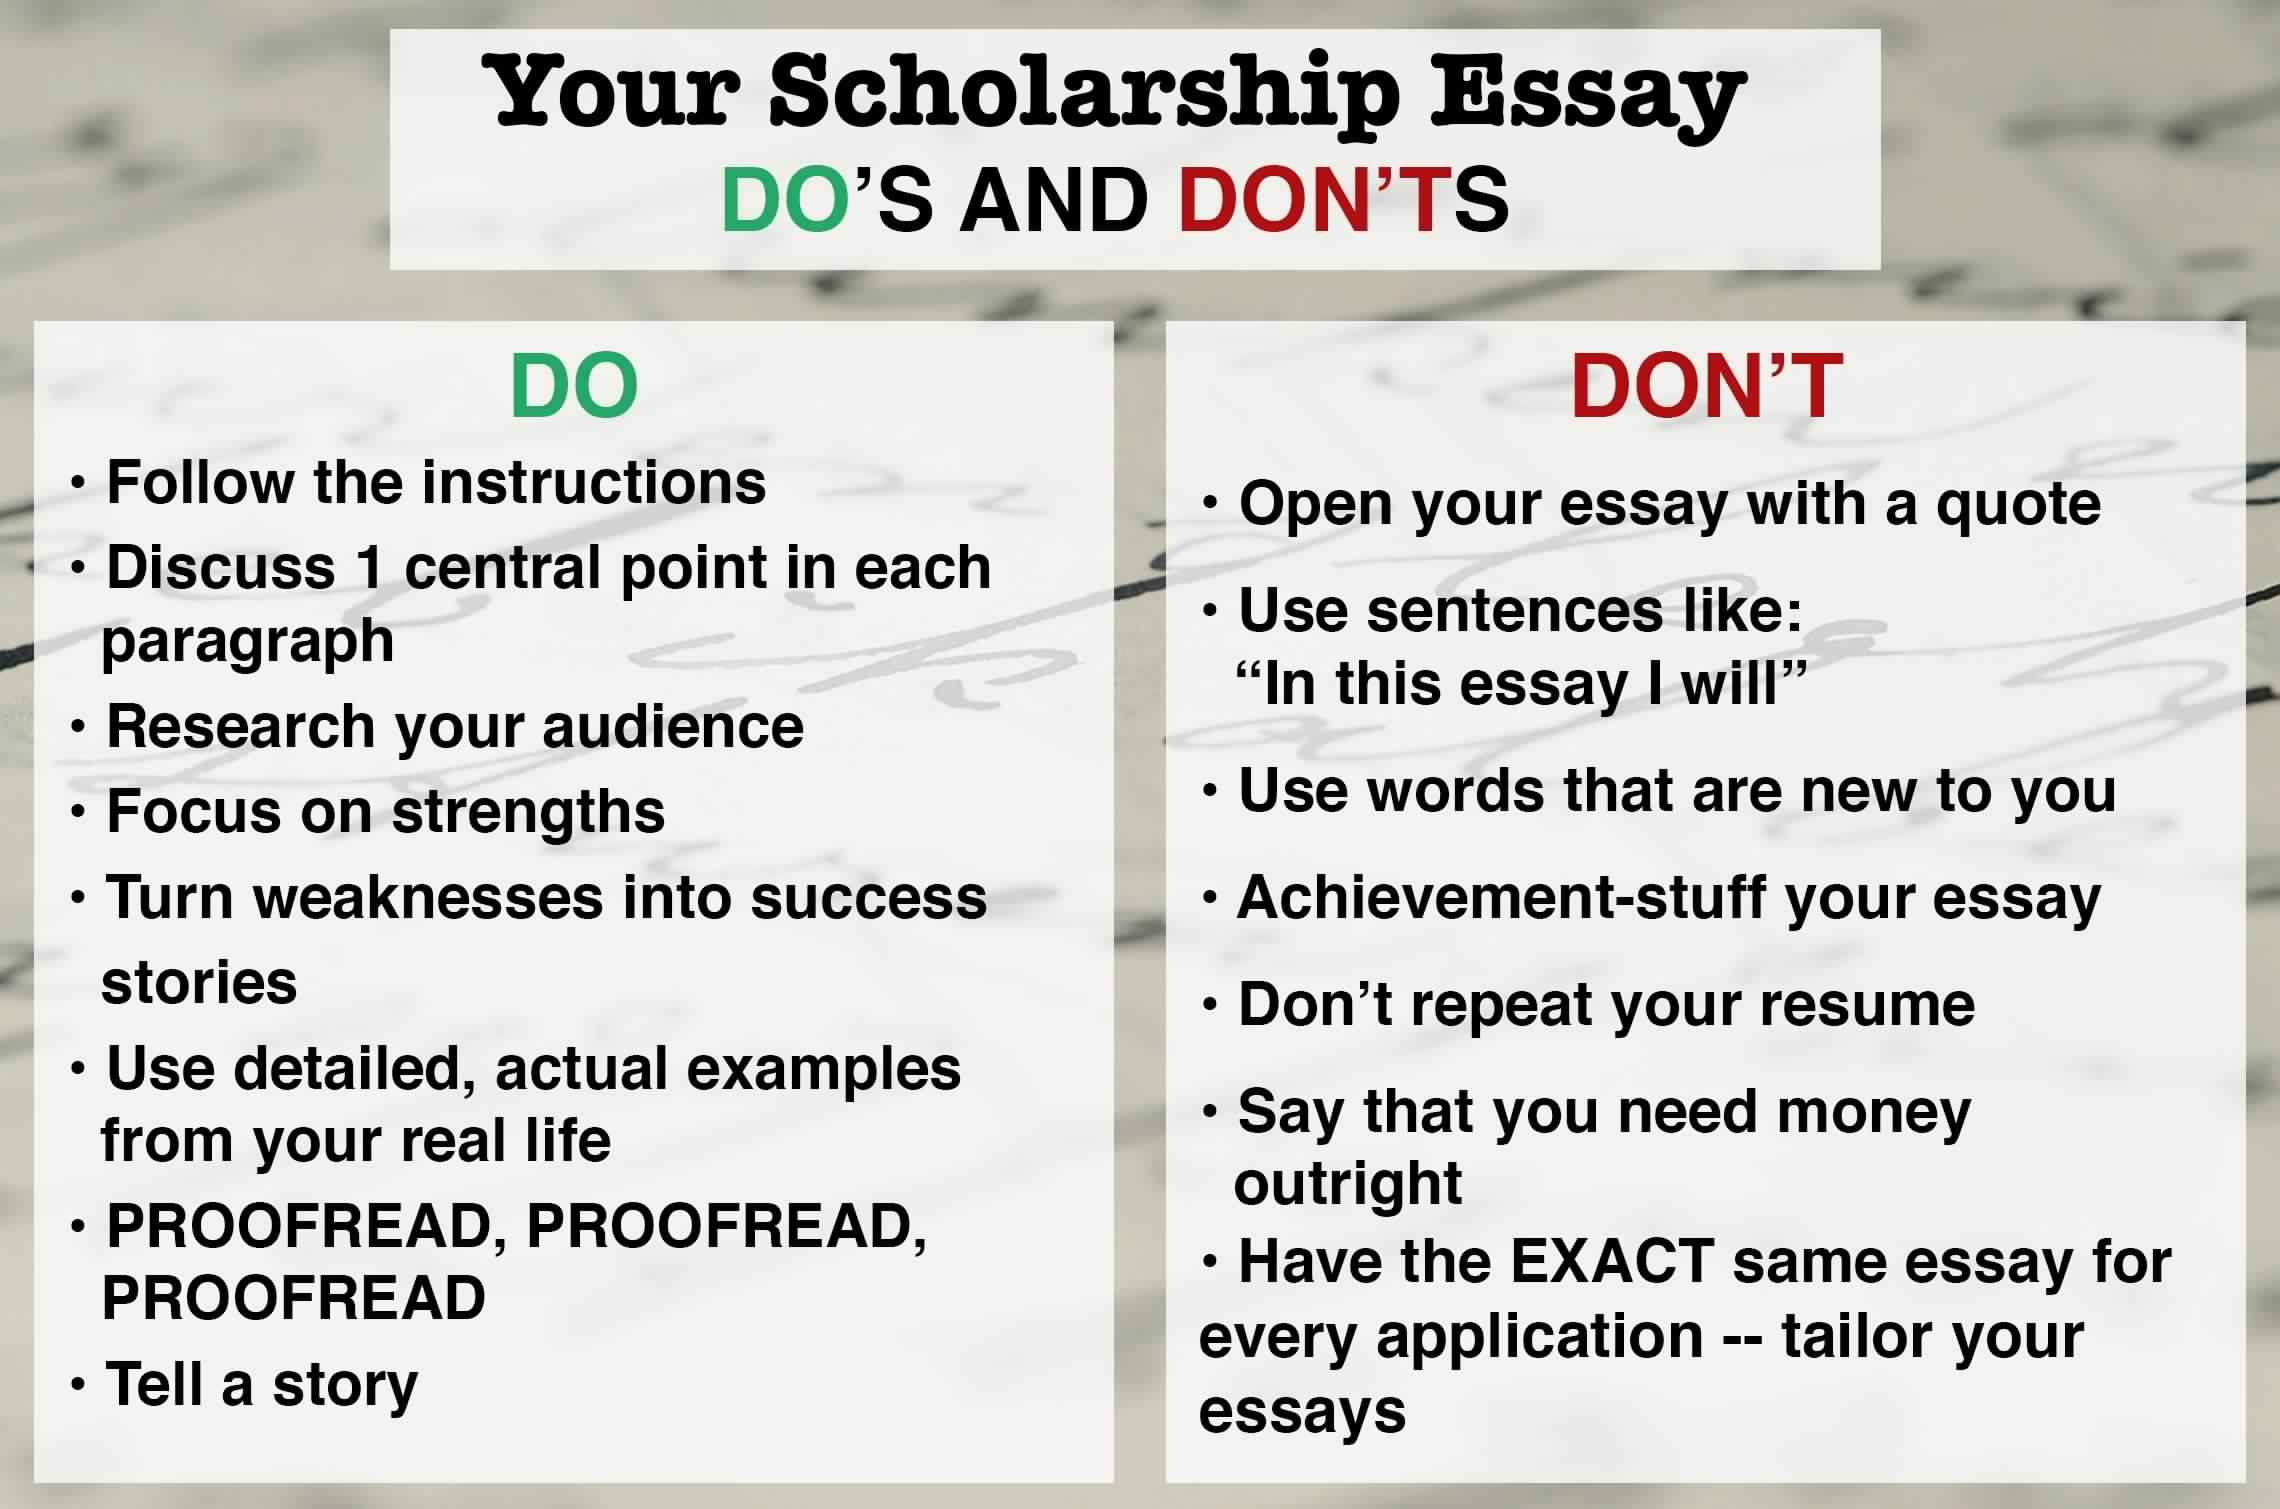 Do write an essay